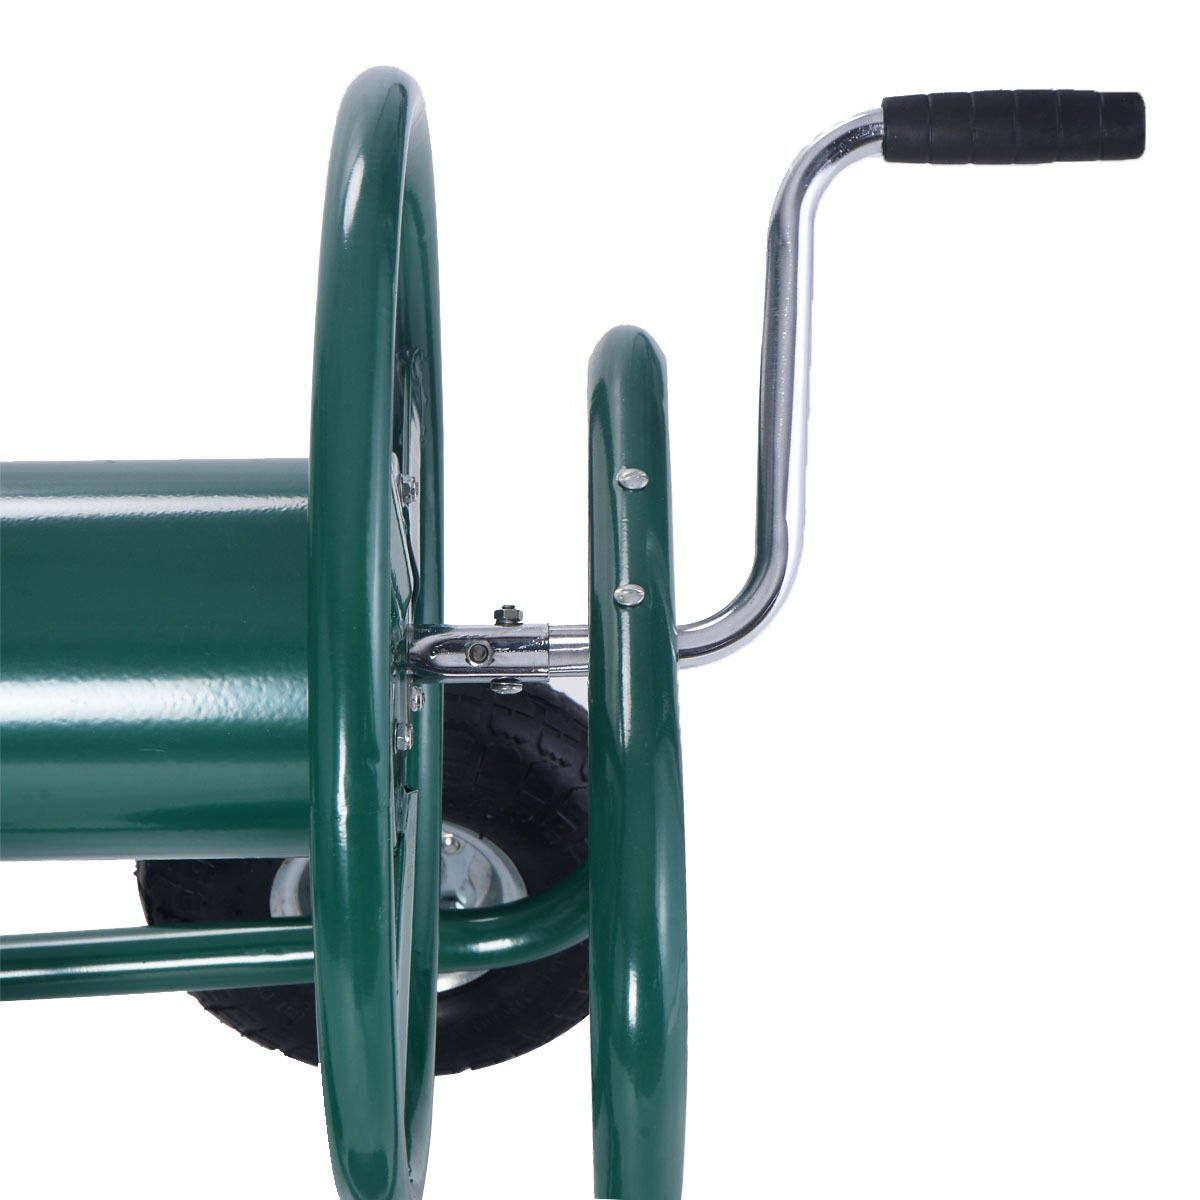 Wakrays Garden Water Hose Reel Cart 300FT Outdoor Heavy Duty Yard Planting W/Basket New by Wakrays (Image #6)